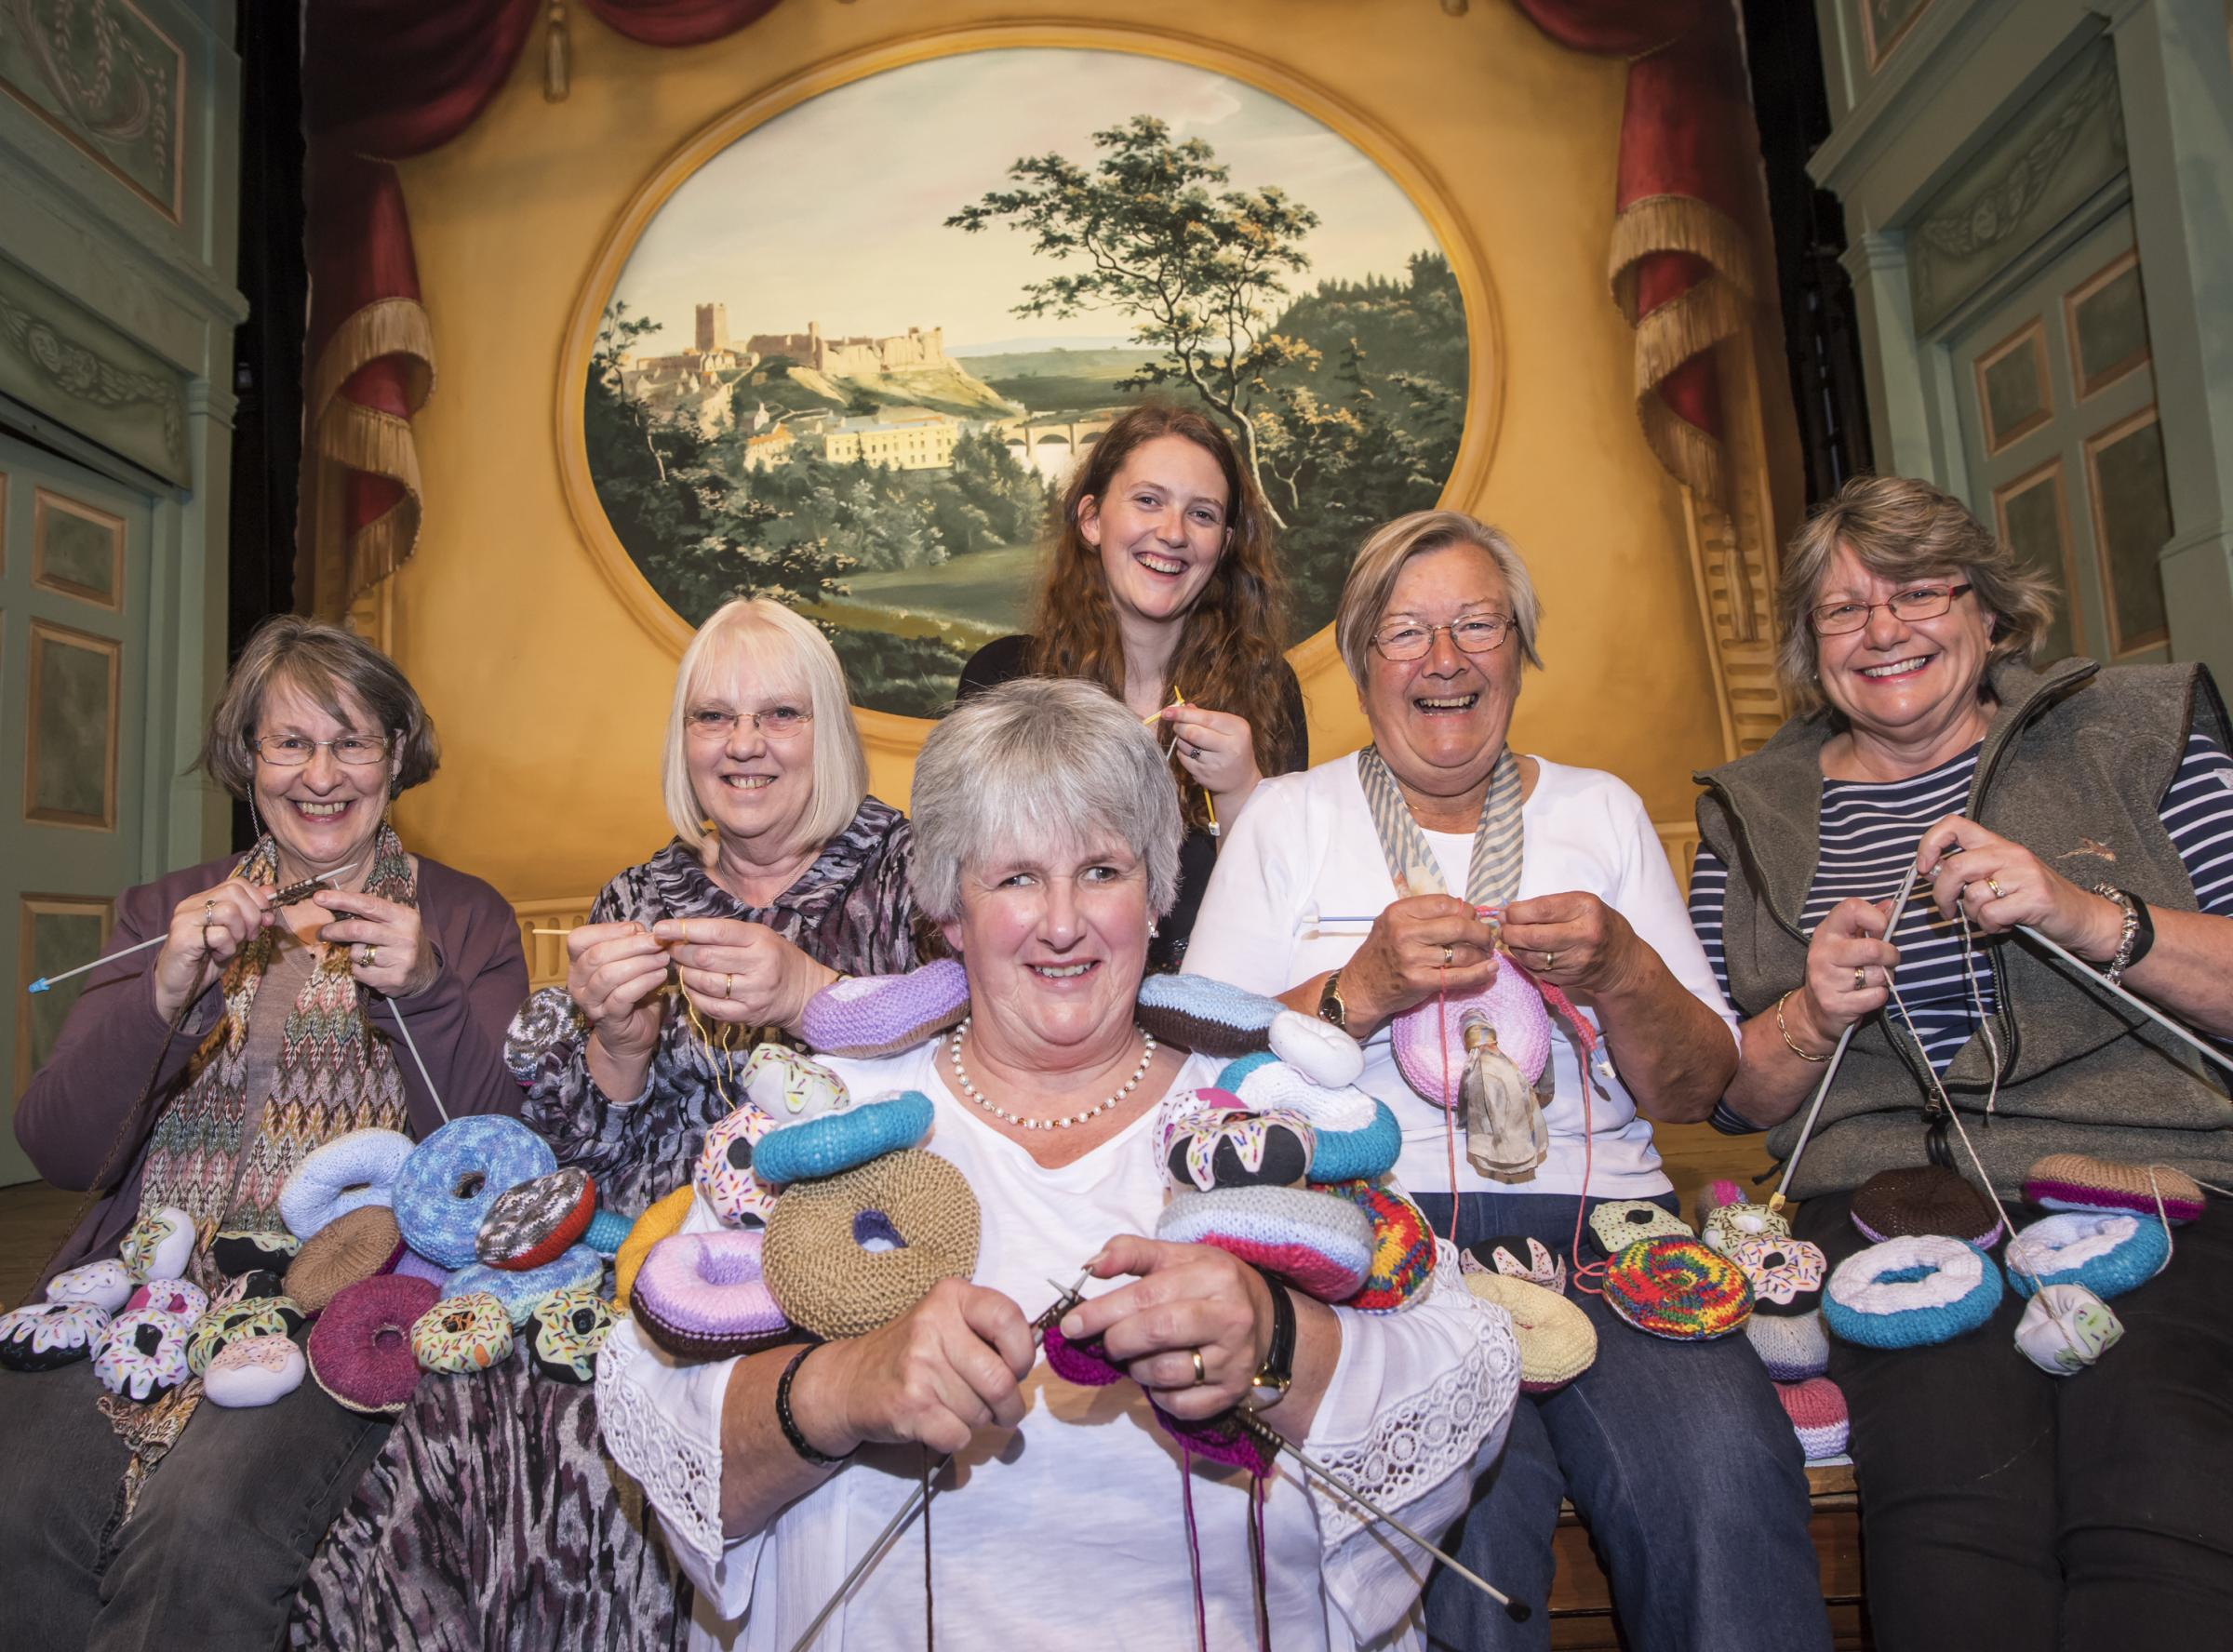 DOUGHNUTS: Volunteers at the Georgian Theatre Royal embark on this year's pantomime knitting campaign. Left to right: Avril Proudlock, Carrie Stephenson, Lynne Kemp, Freya Mawhinney, Jen Capewell and Sue Stephenson.